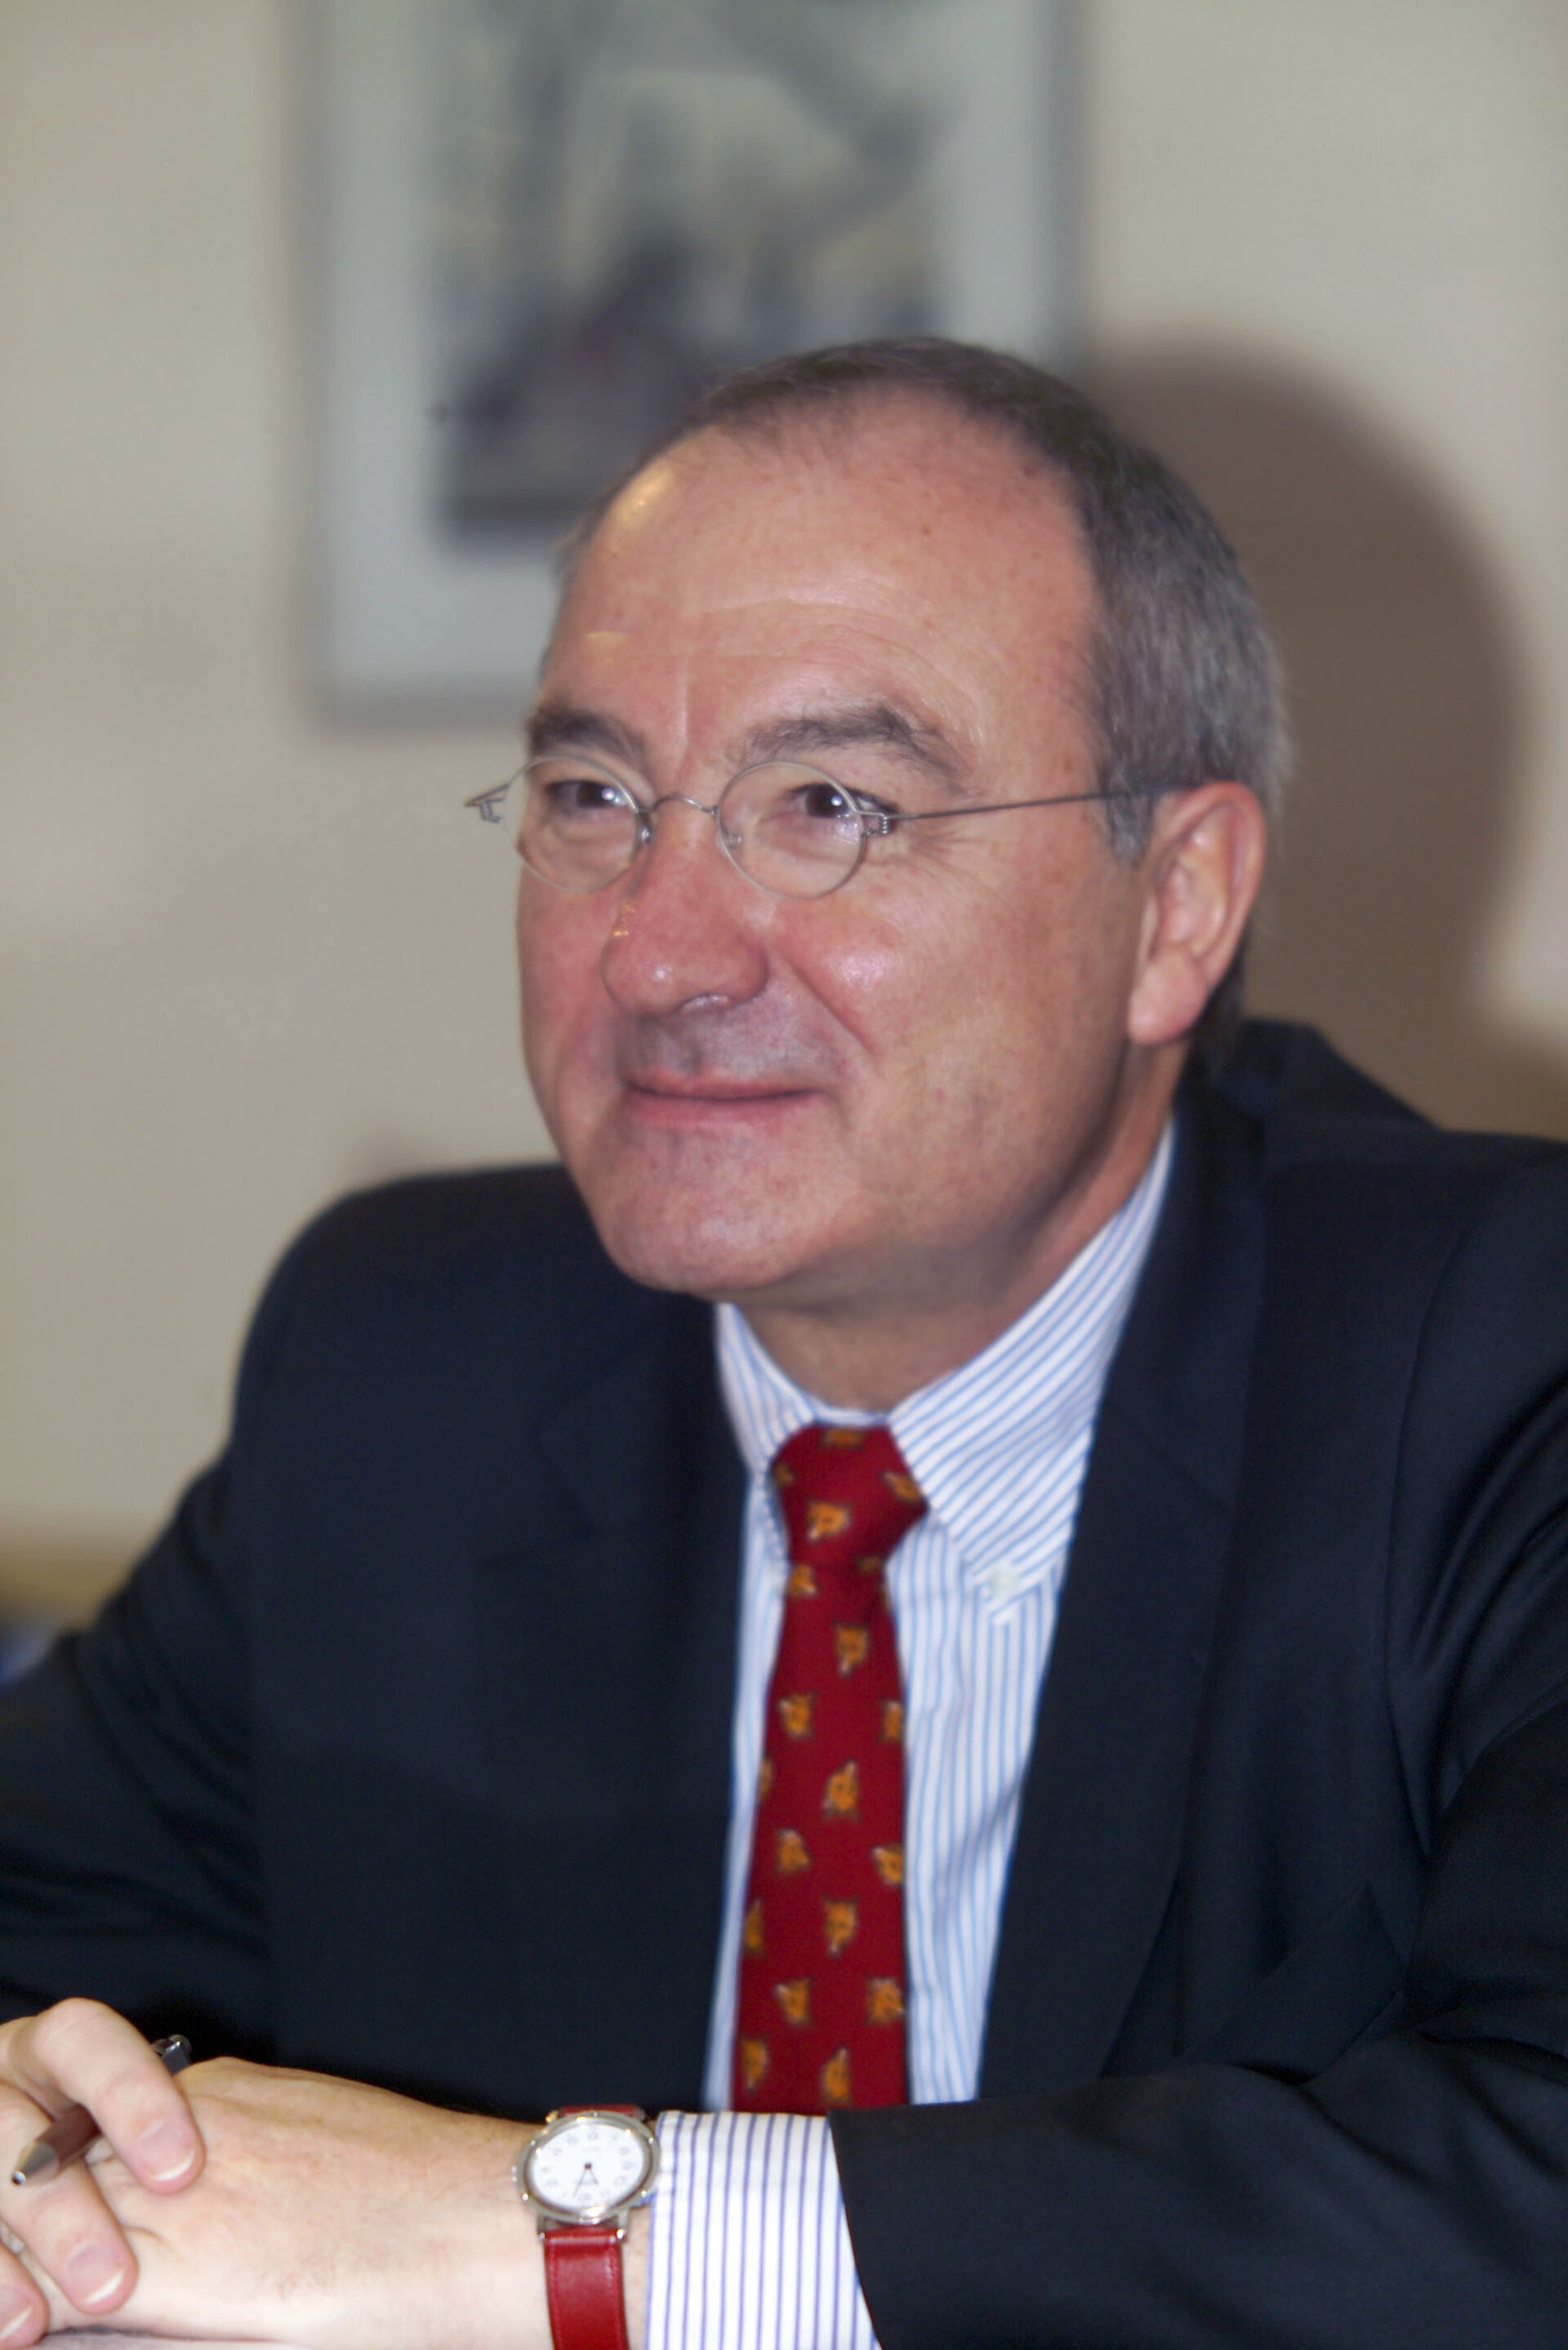 ESA's DG, Mr. Jean-Jacques Dordain